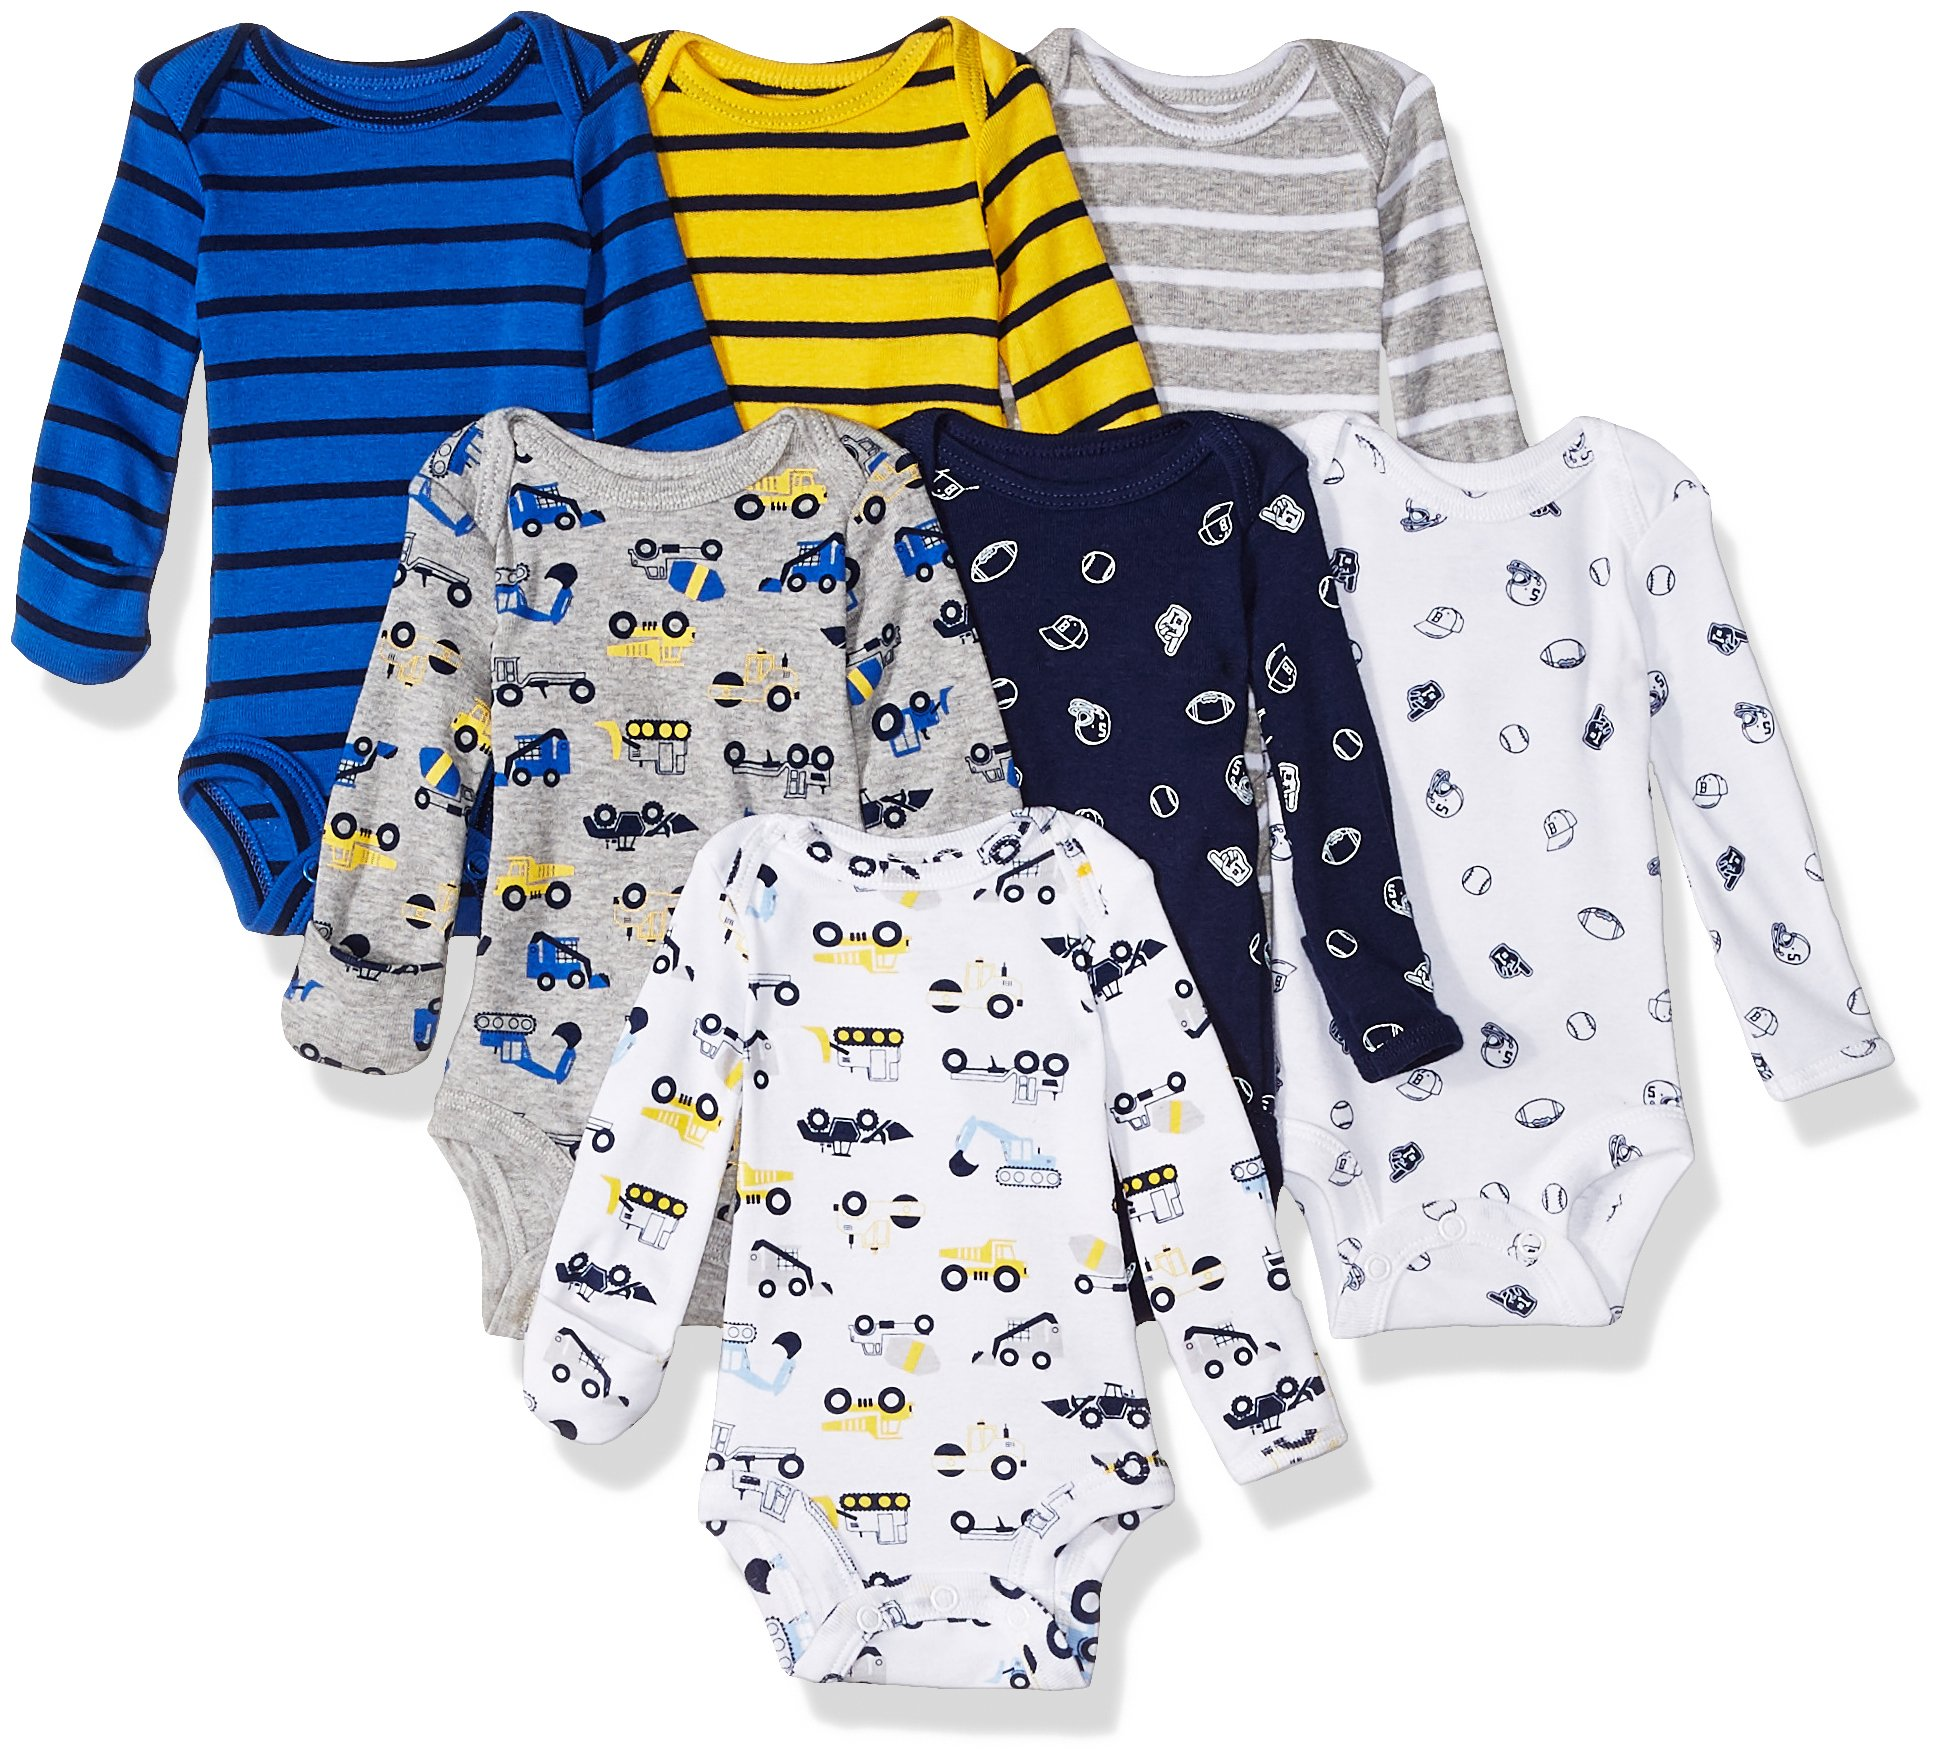 Carter's Baby 7 Pack Long Sleeve Bodysuits, construction/sports, 3 Months by Carter's